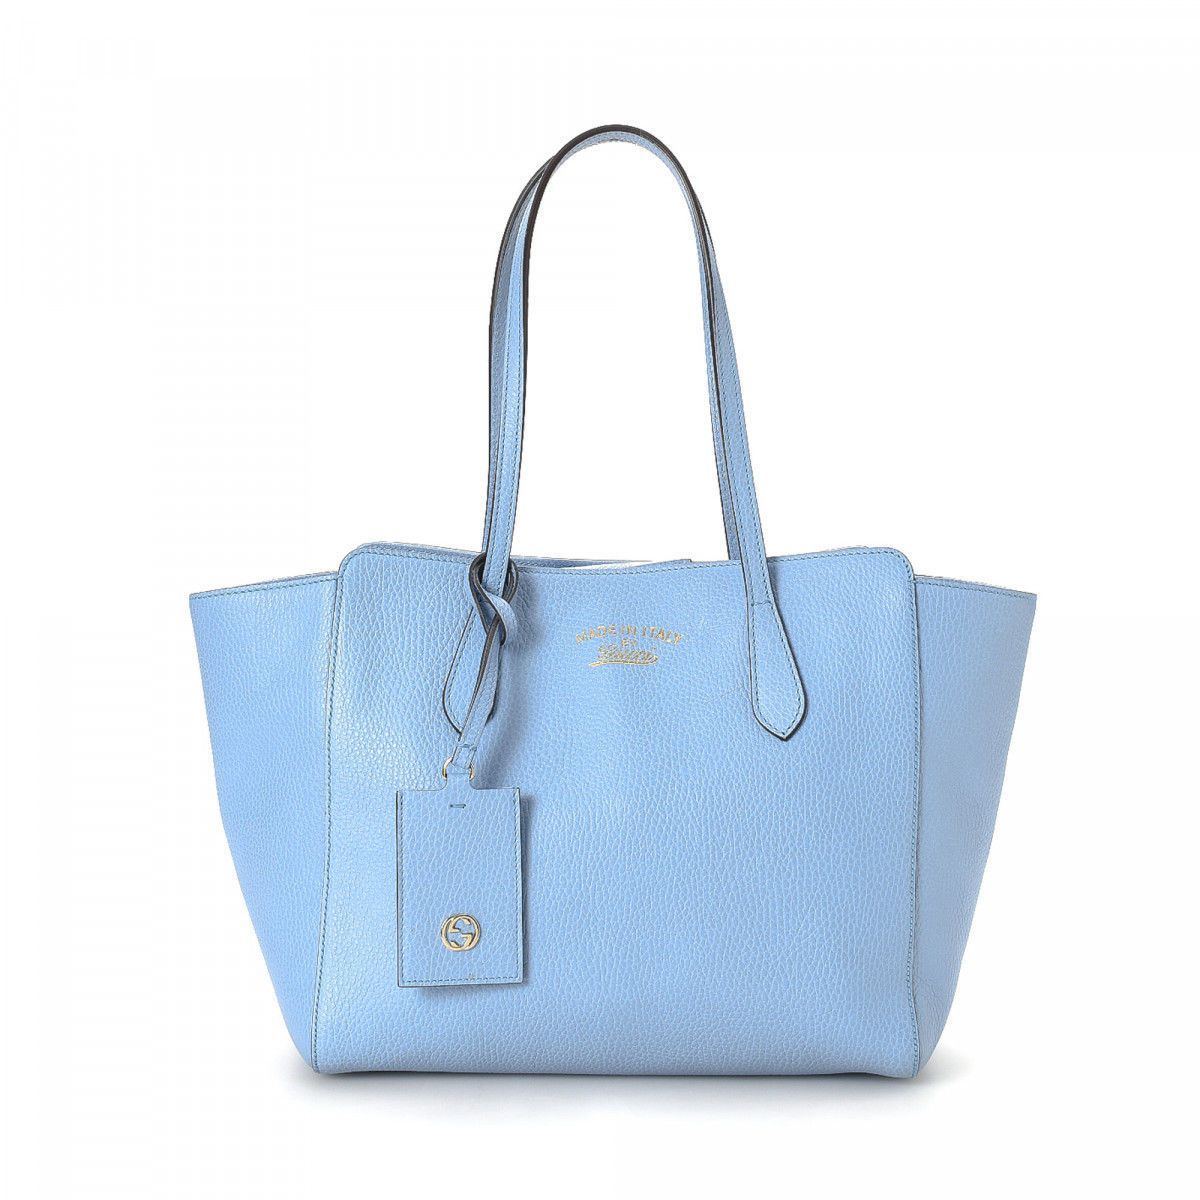 Gucci Swing Tote Bag Leather Gucci Swing Tote Bag